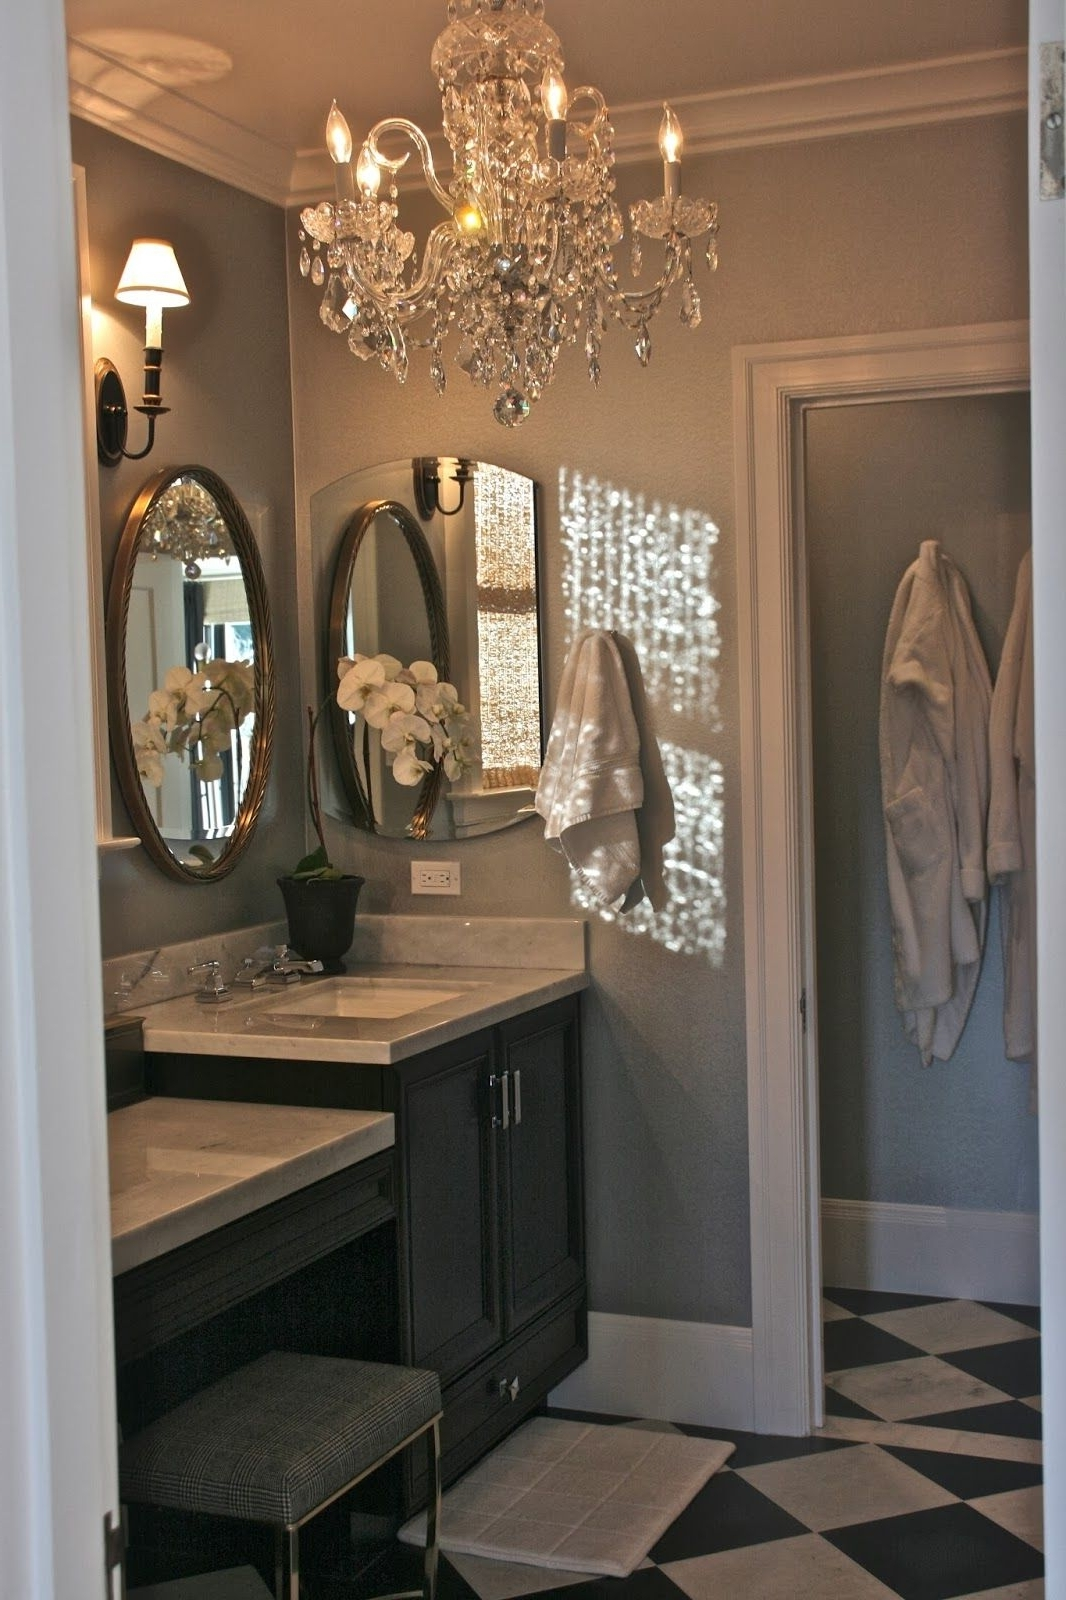 Chandelier Bathroom Lighting Fixtures Throughout Favorite Elegant Retreat. .  (View 6 of 20)